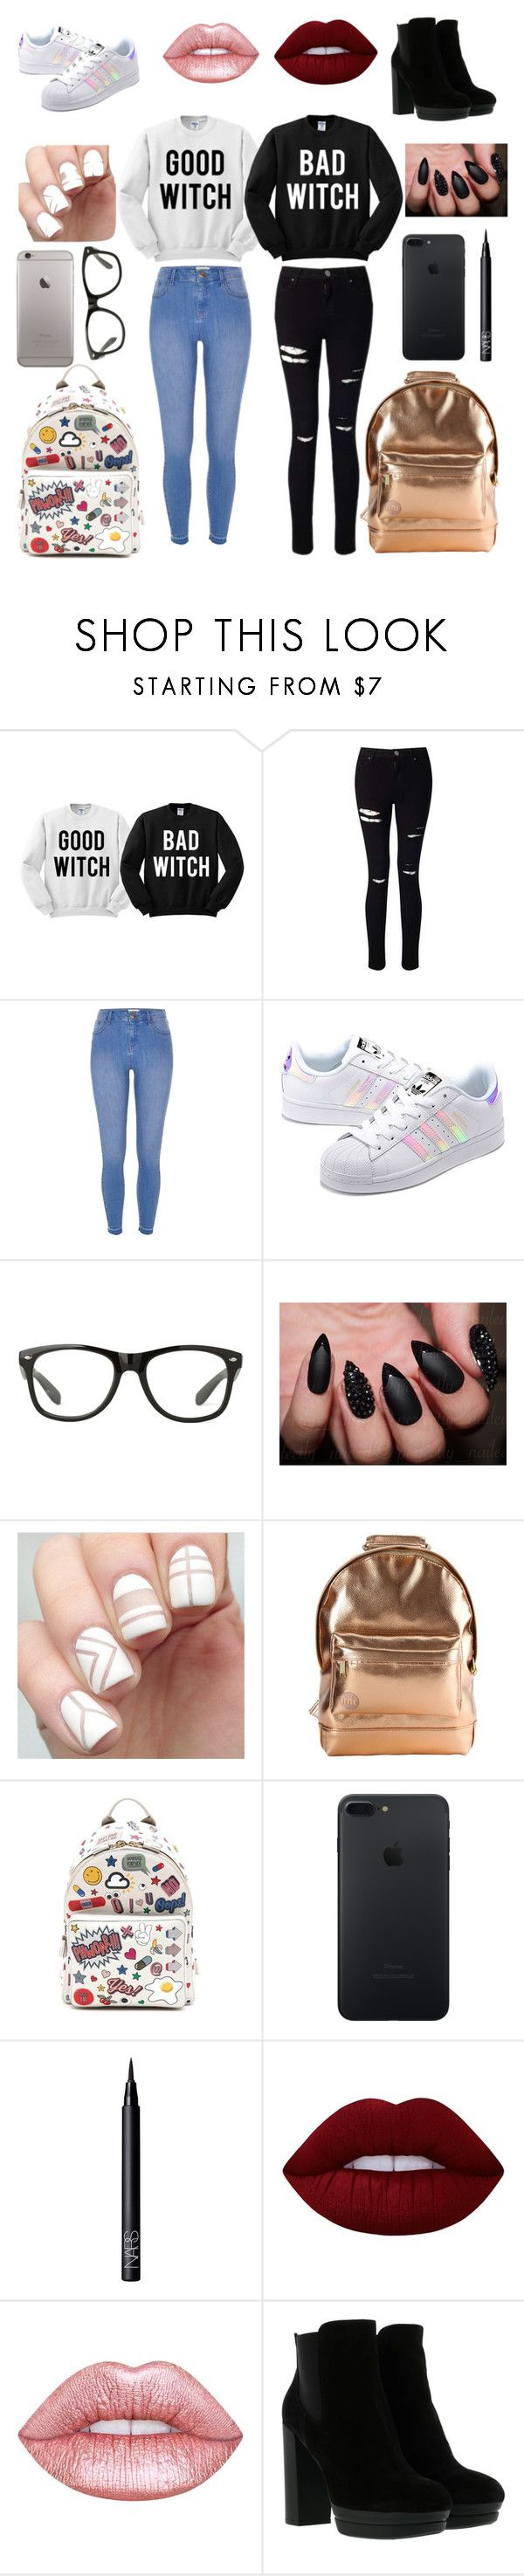 """Twensies"" by mckalethompson ❤ liked on Polyvore featuring Miss Selfridge, River Island, adidas Originals, Mi-Pac, Anya Hindmarch, NARS Cosmetics, Lime Crime and Hogan"